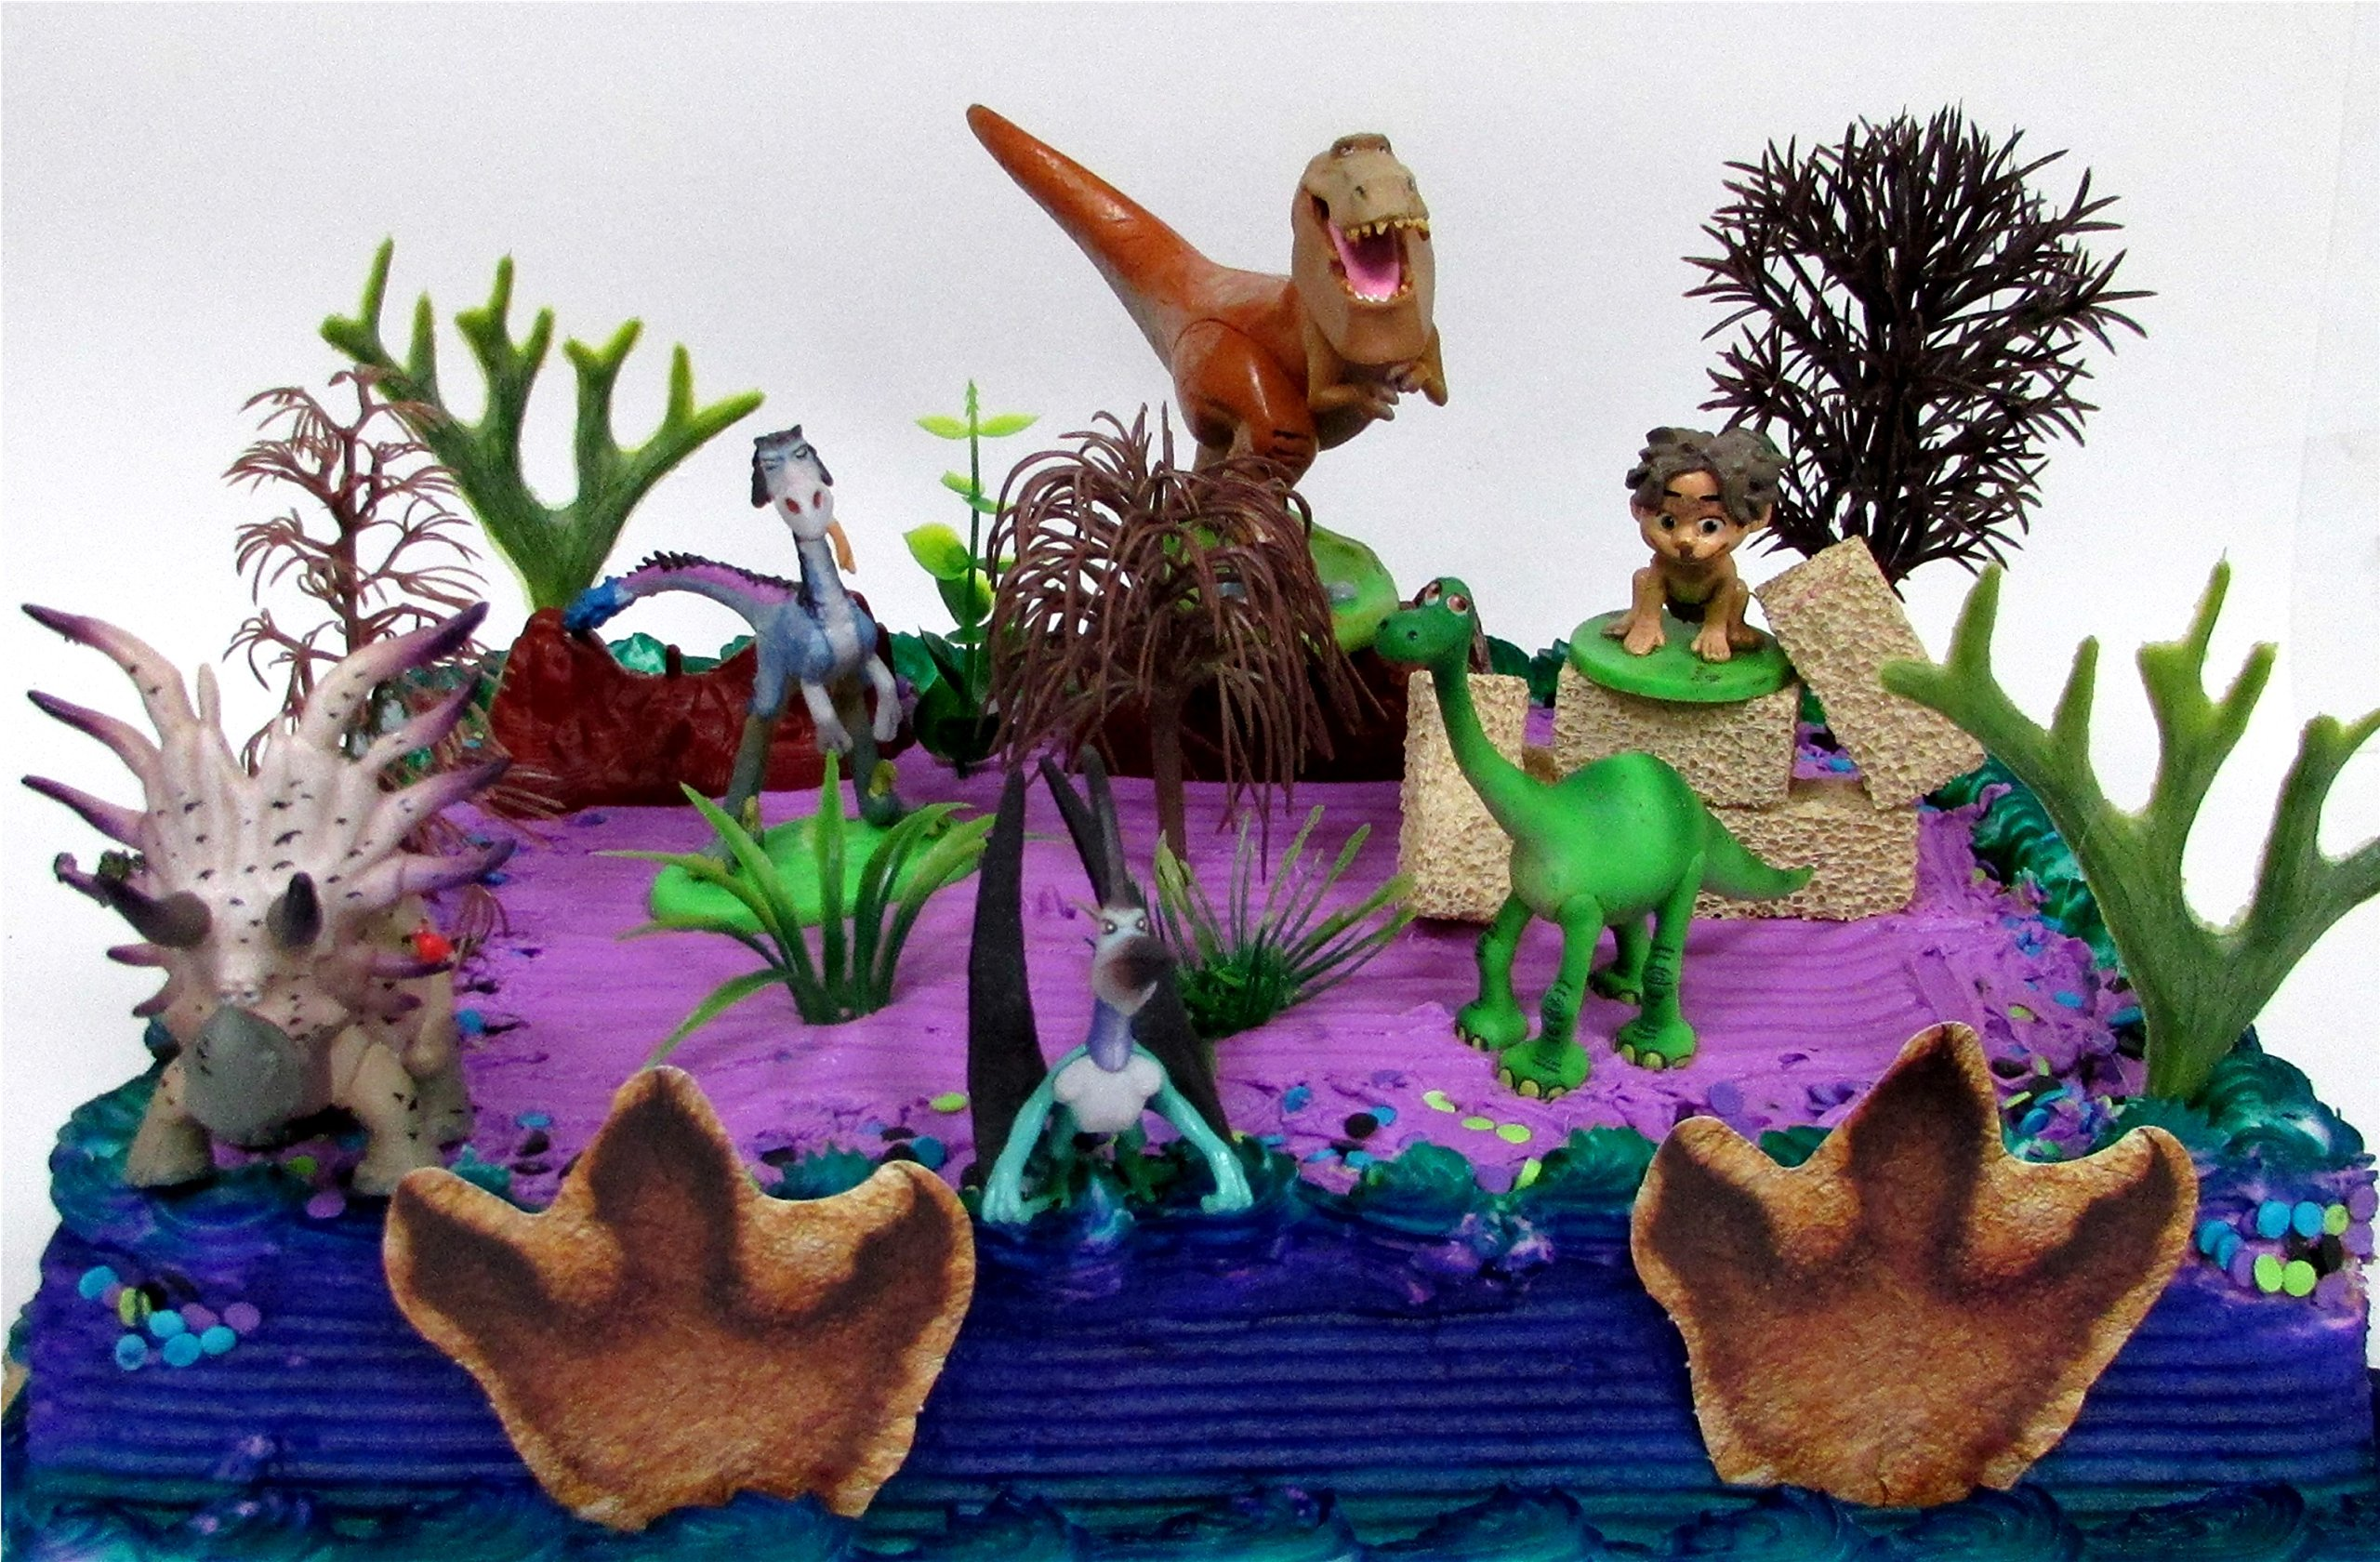 15 Piece GOOD DINOSAUR Themed Birthday Cake Topper Set Featuring ARLO and Friends Characters and Decorative Themed Accessories